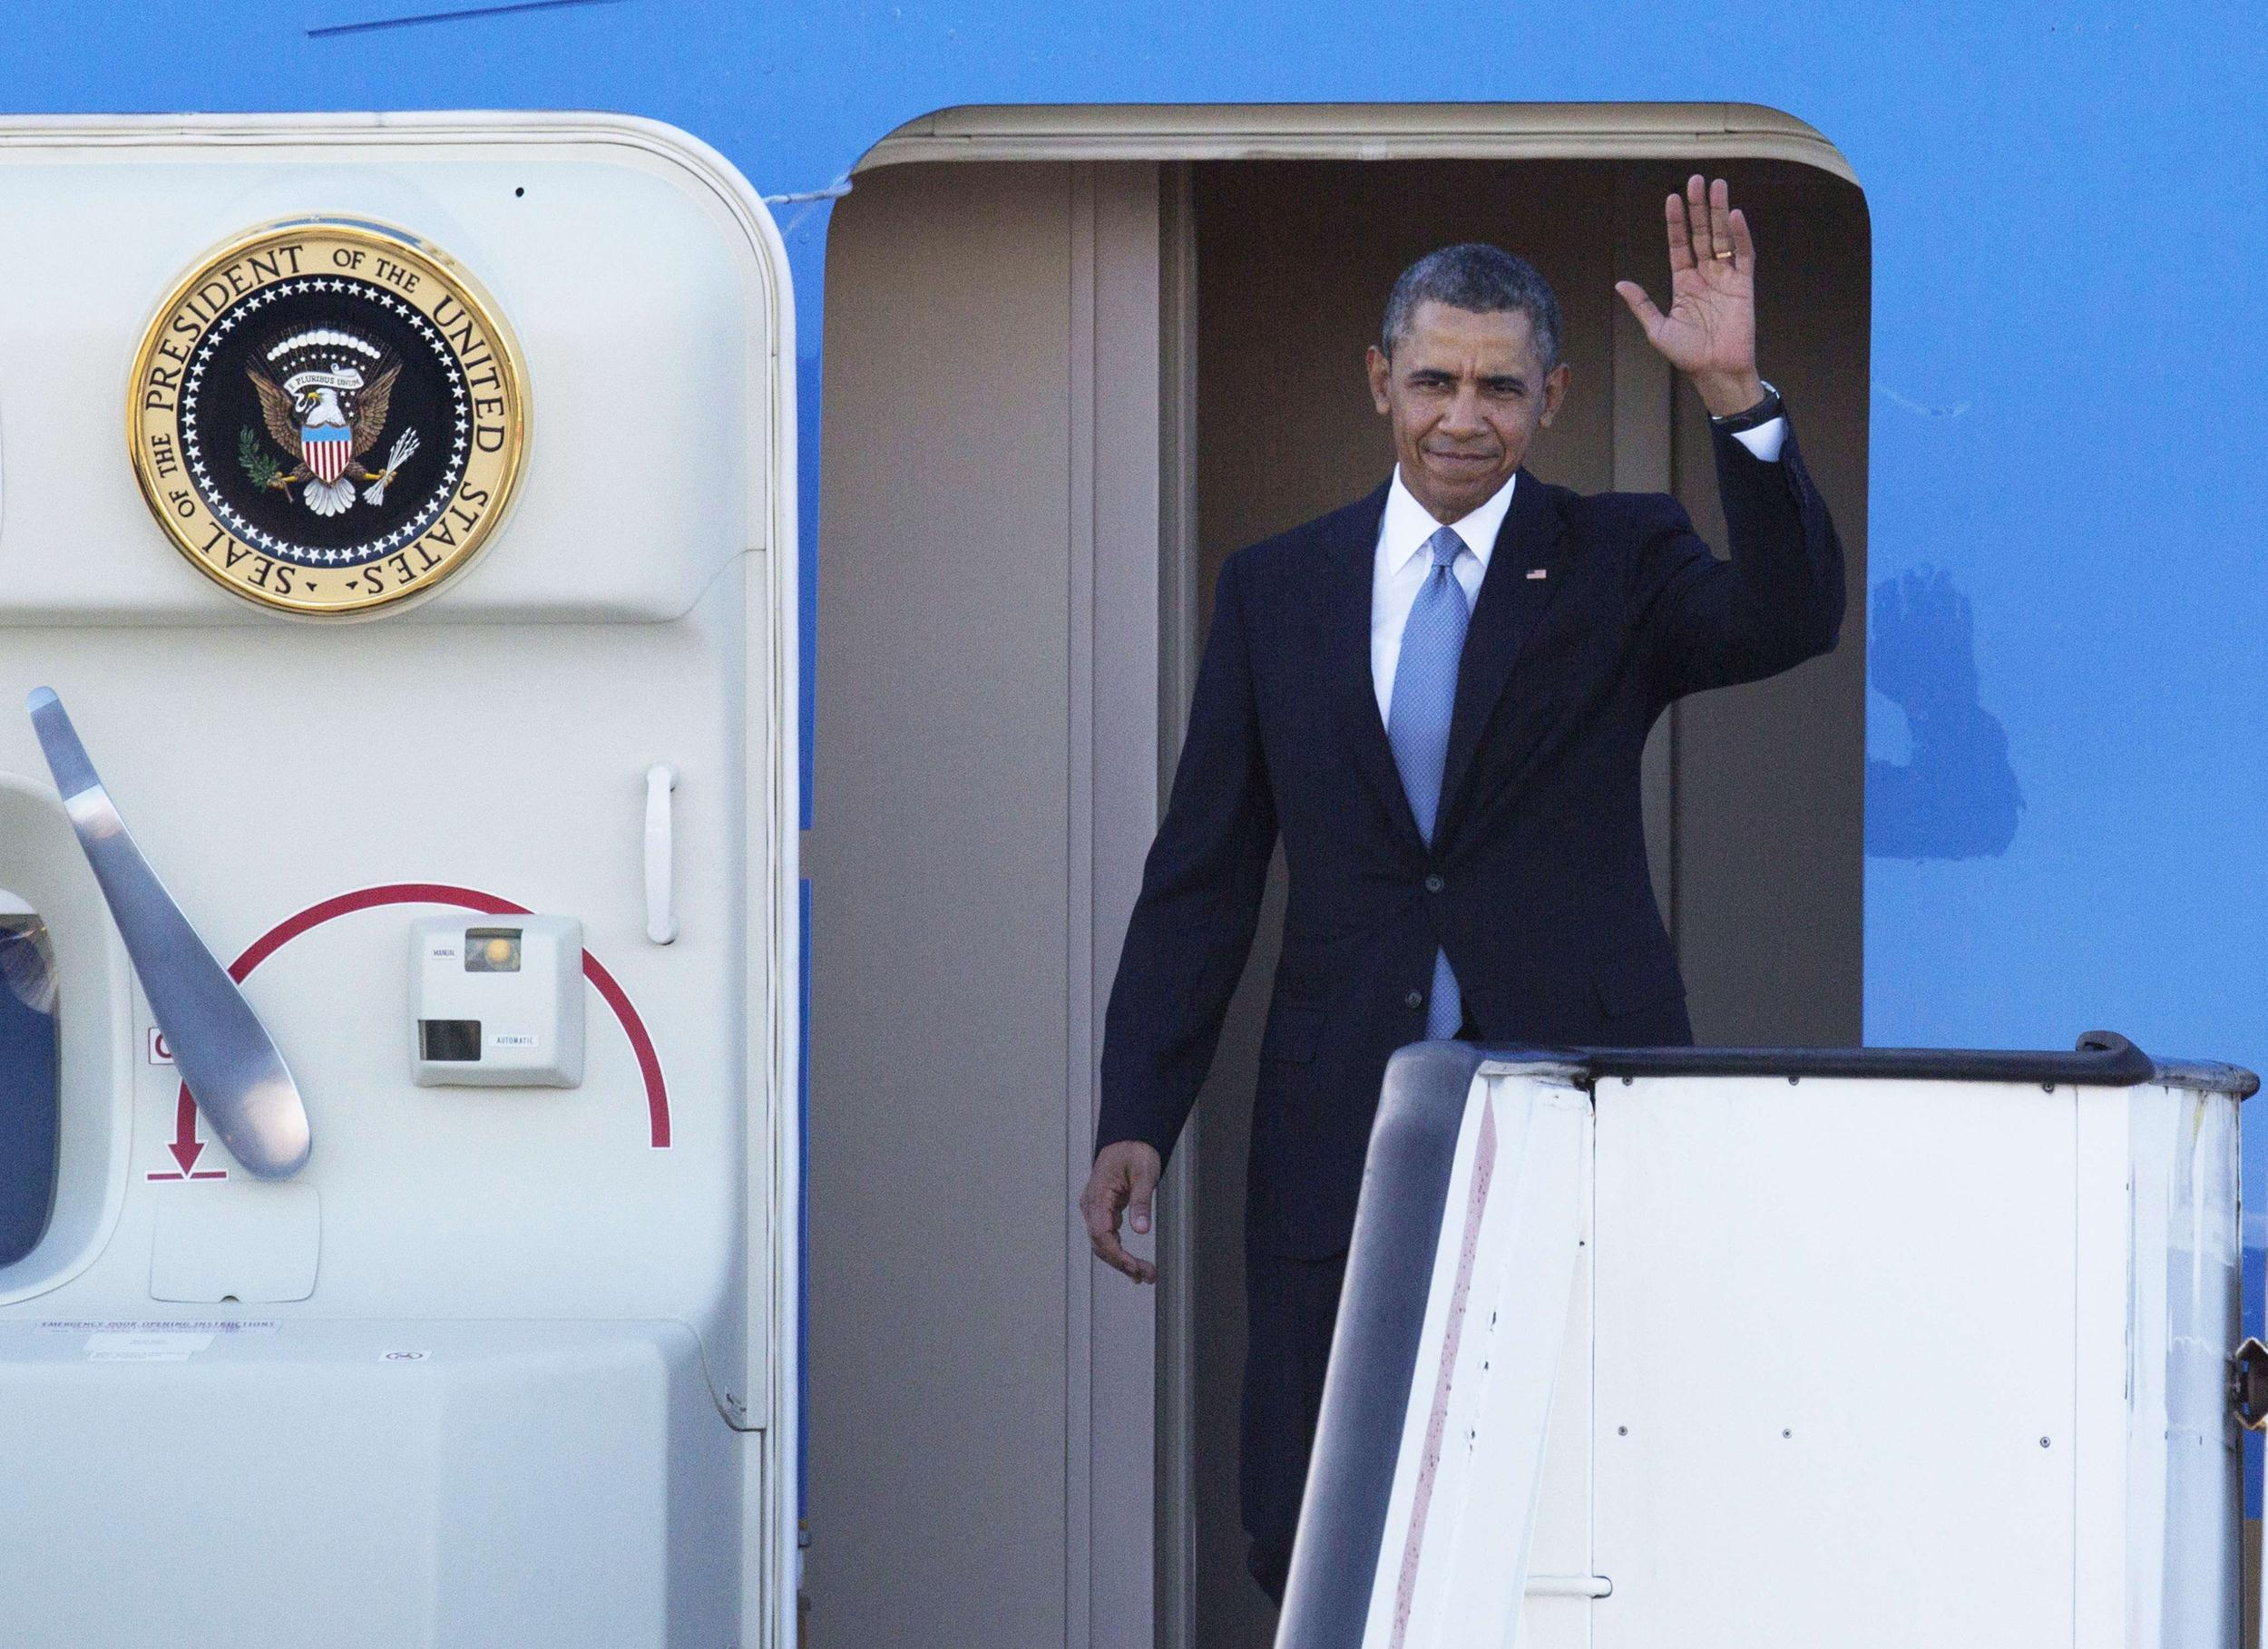 Image: President Barack Obama waves as he disembarks from Air Force One upon his arrival at Schiphol Amsterdam Airport